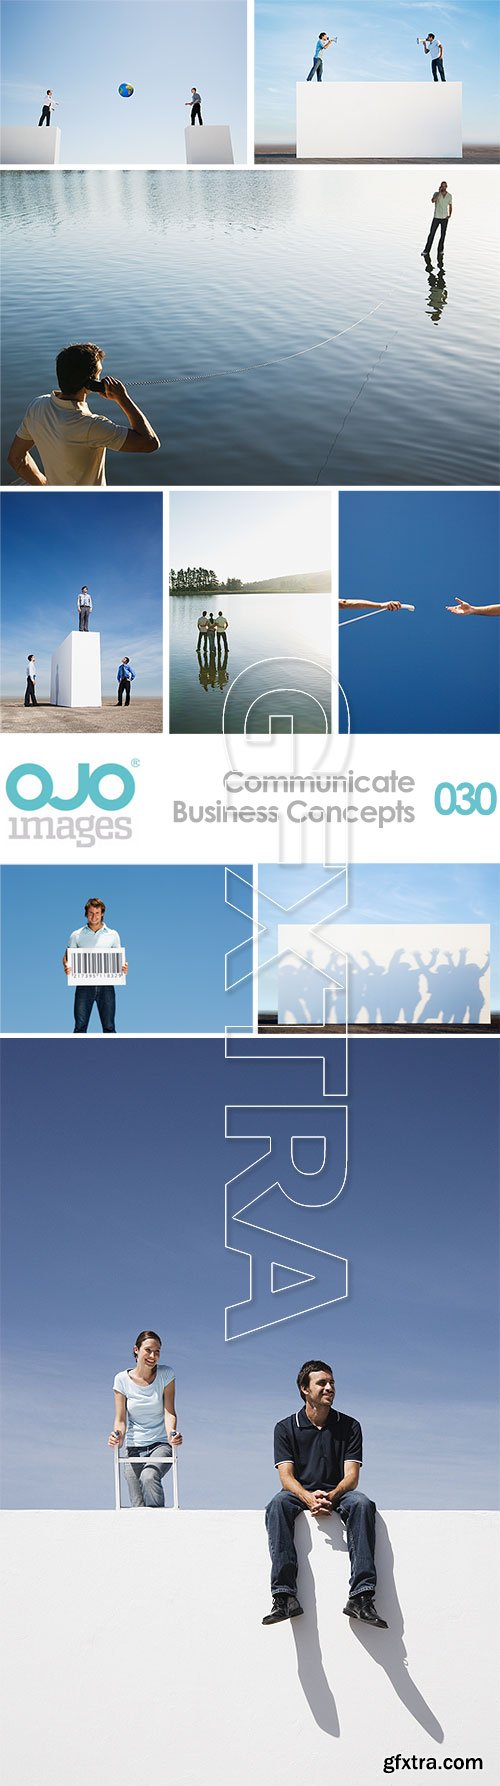 OJO Images OJ030 Communicate-Business Concepts